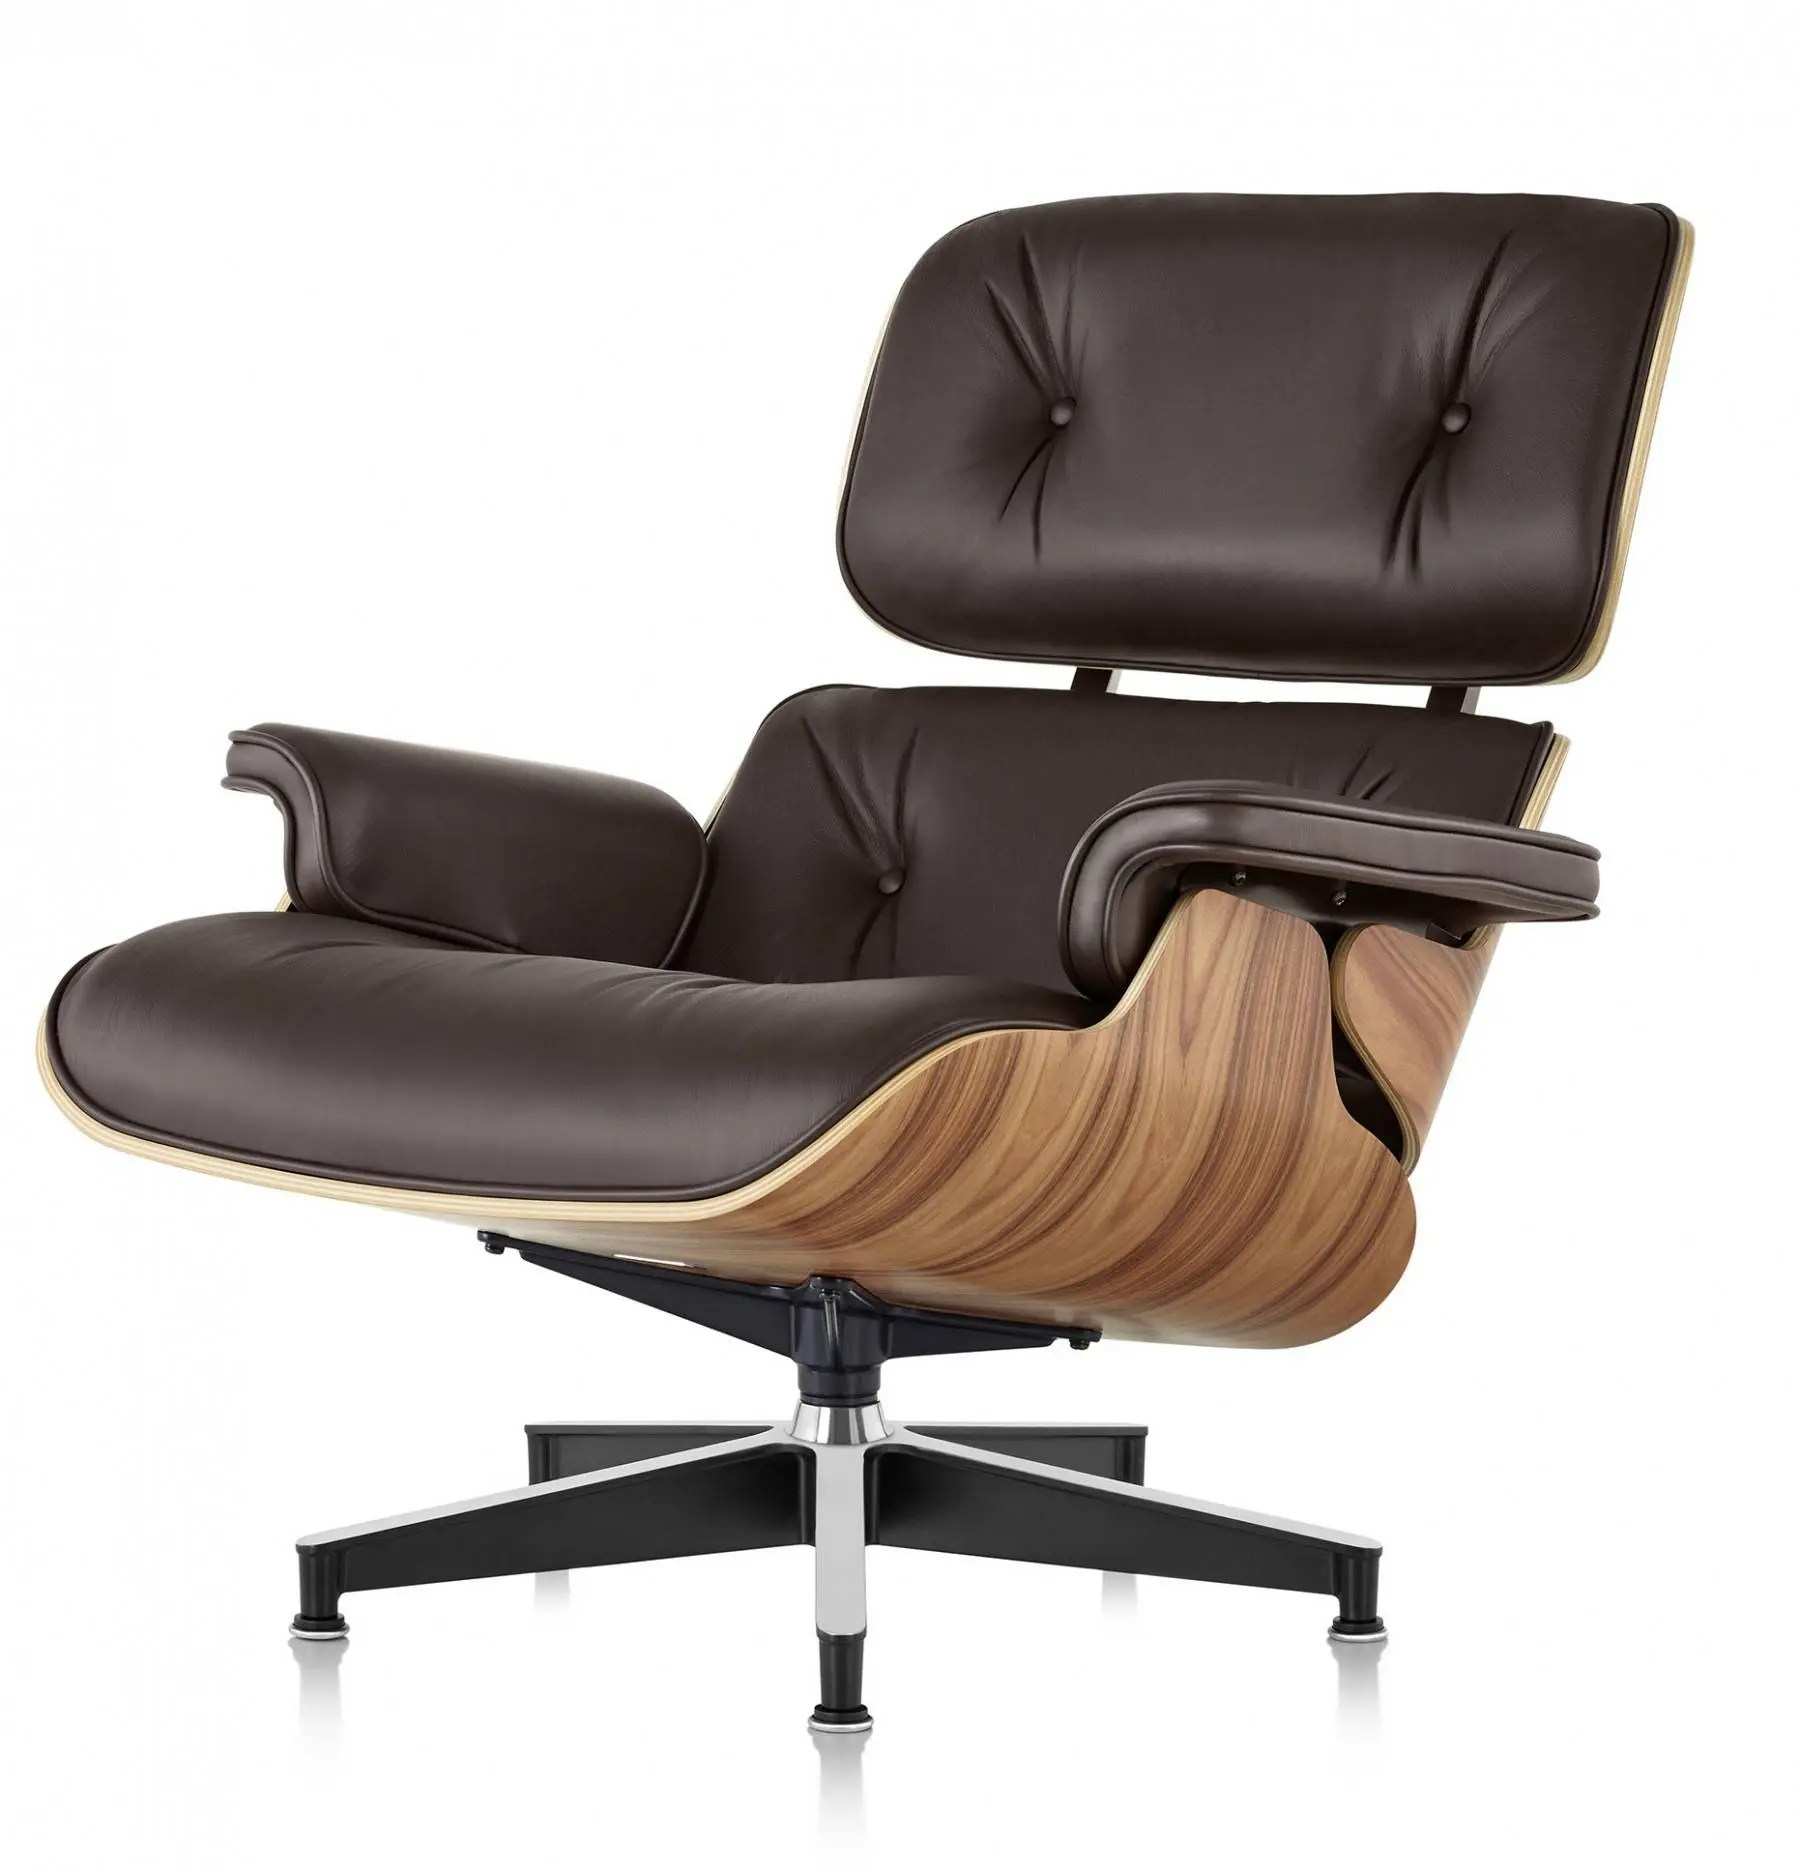 Eanes Chair Herman Miller Eames Lounge Chair